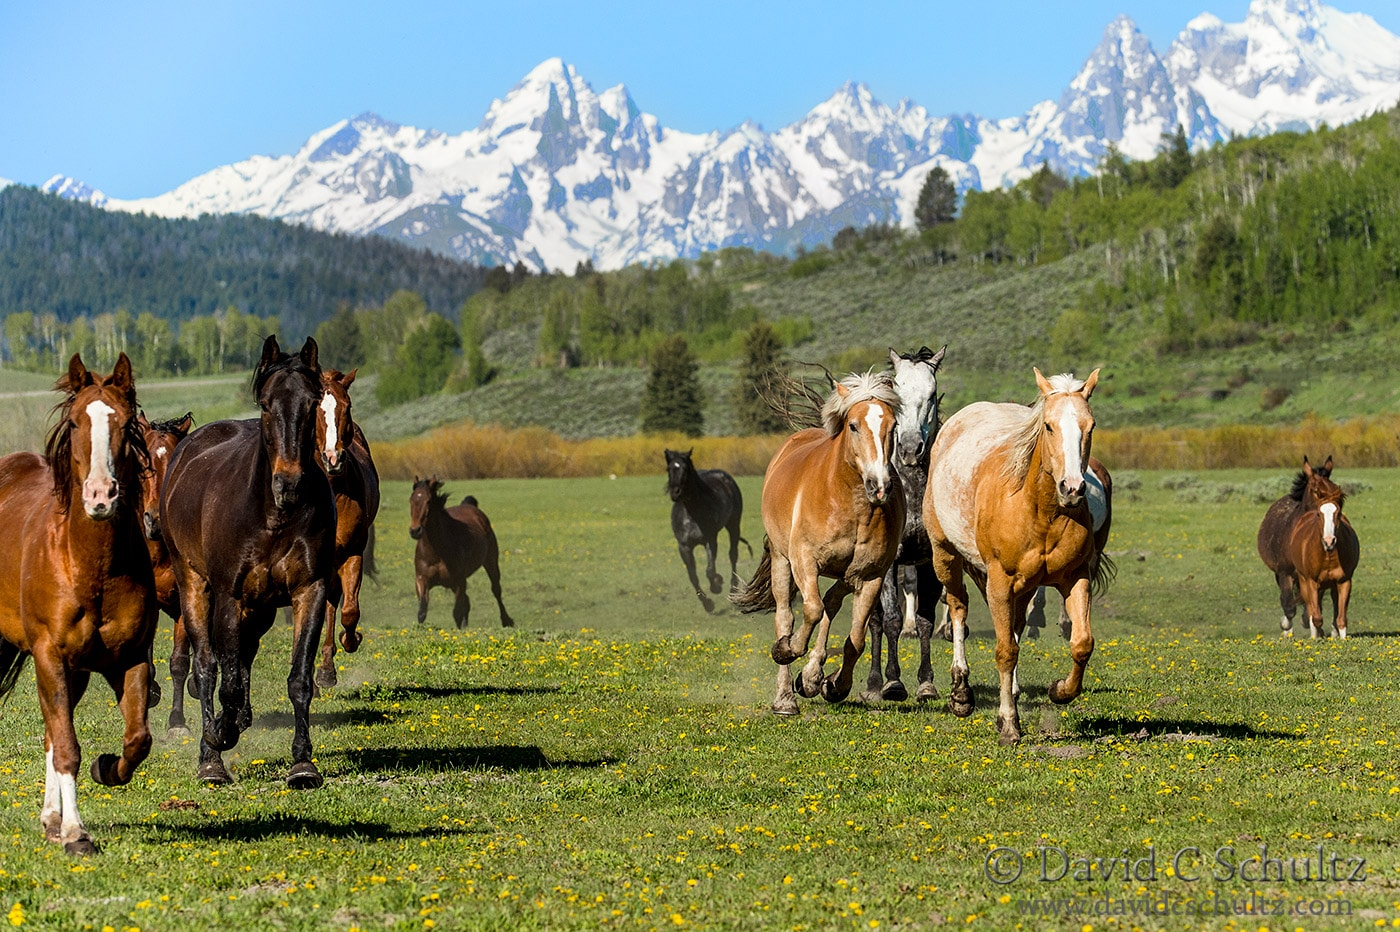 Horses and the Grand Tetons - Image #47-1282